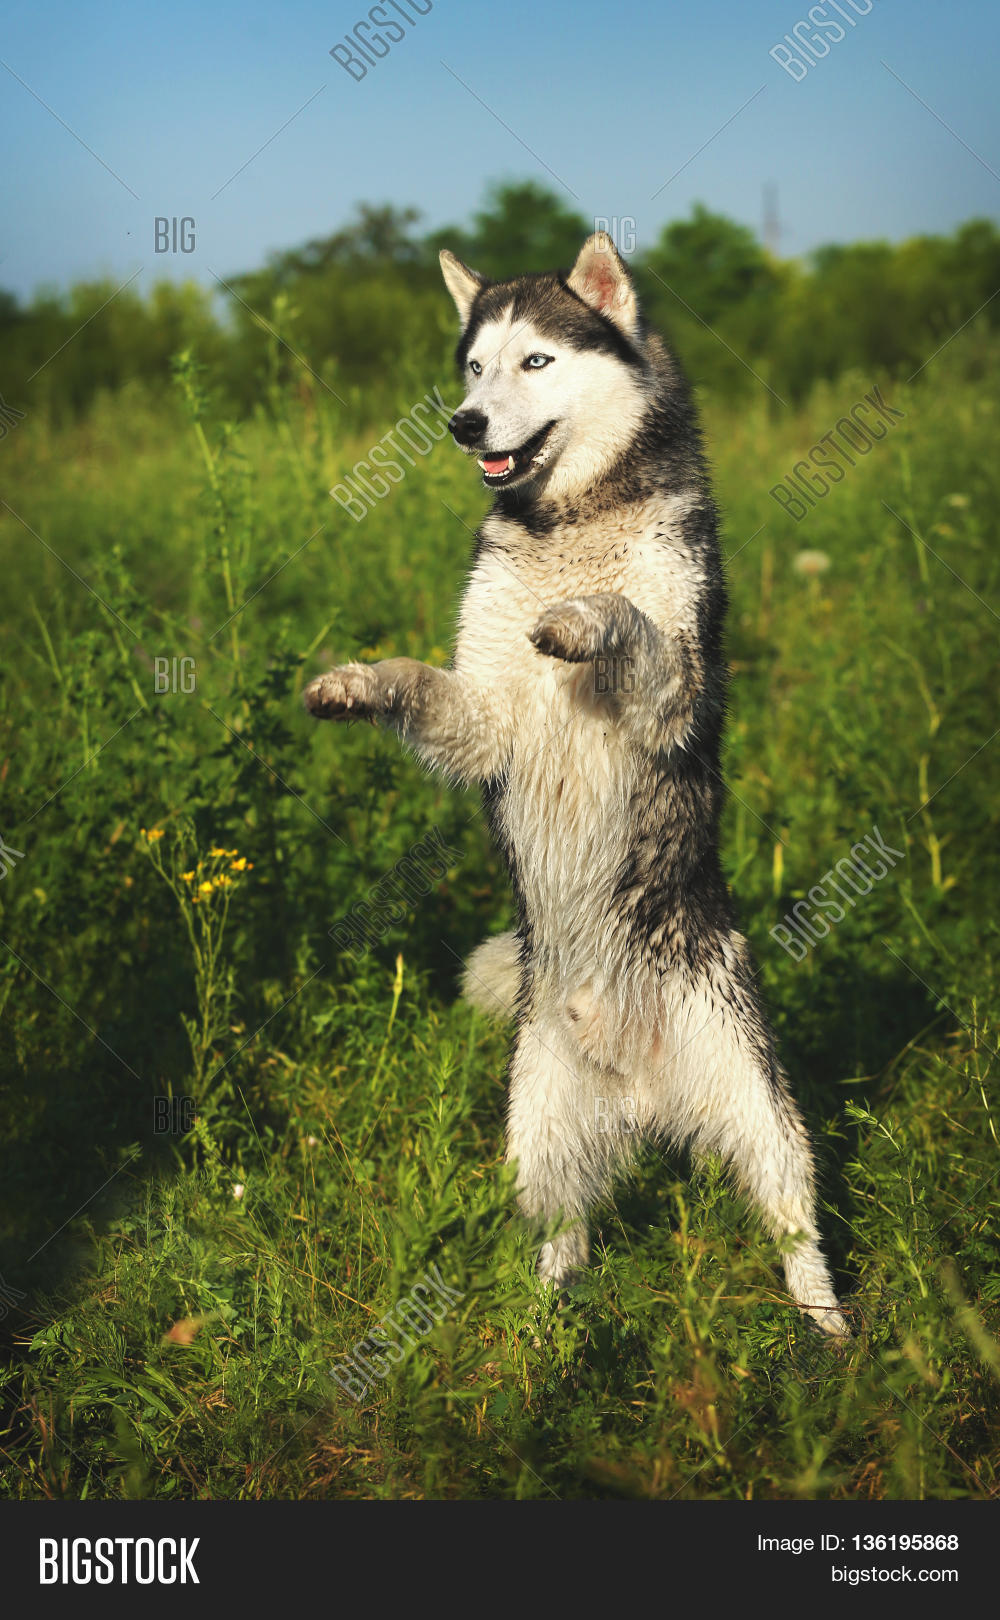 dog breed siberian husky standing image u0026 photo bigstock